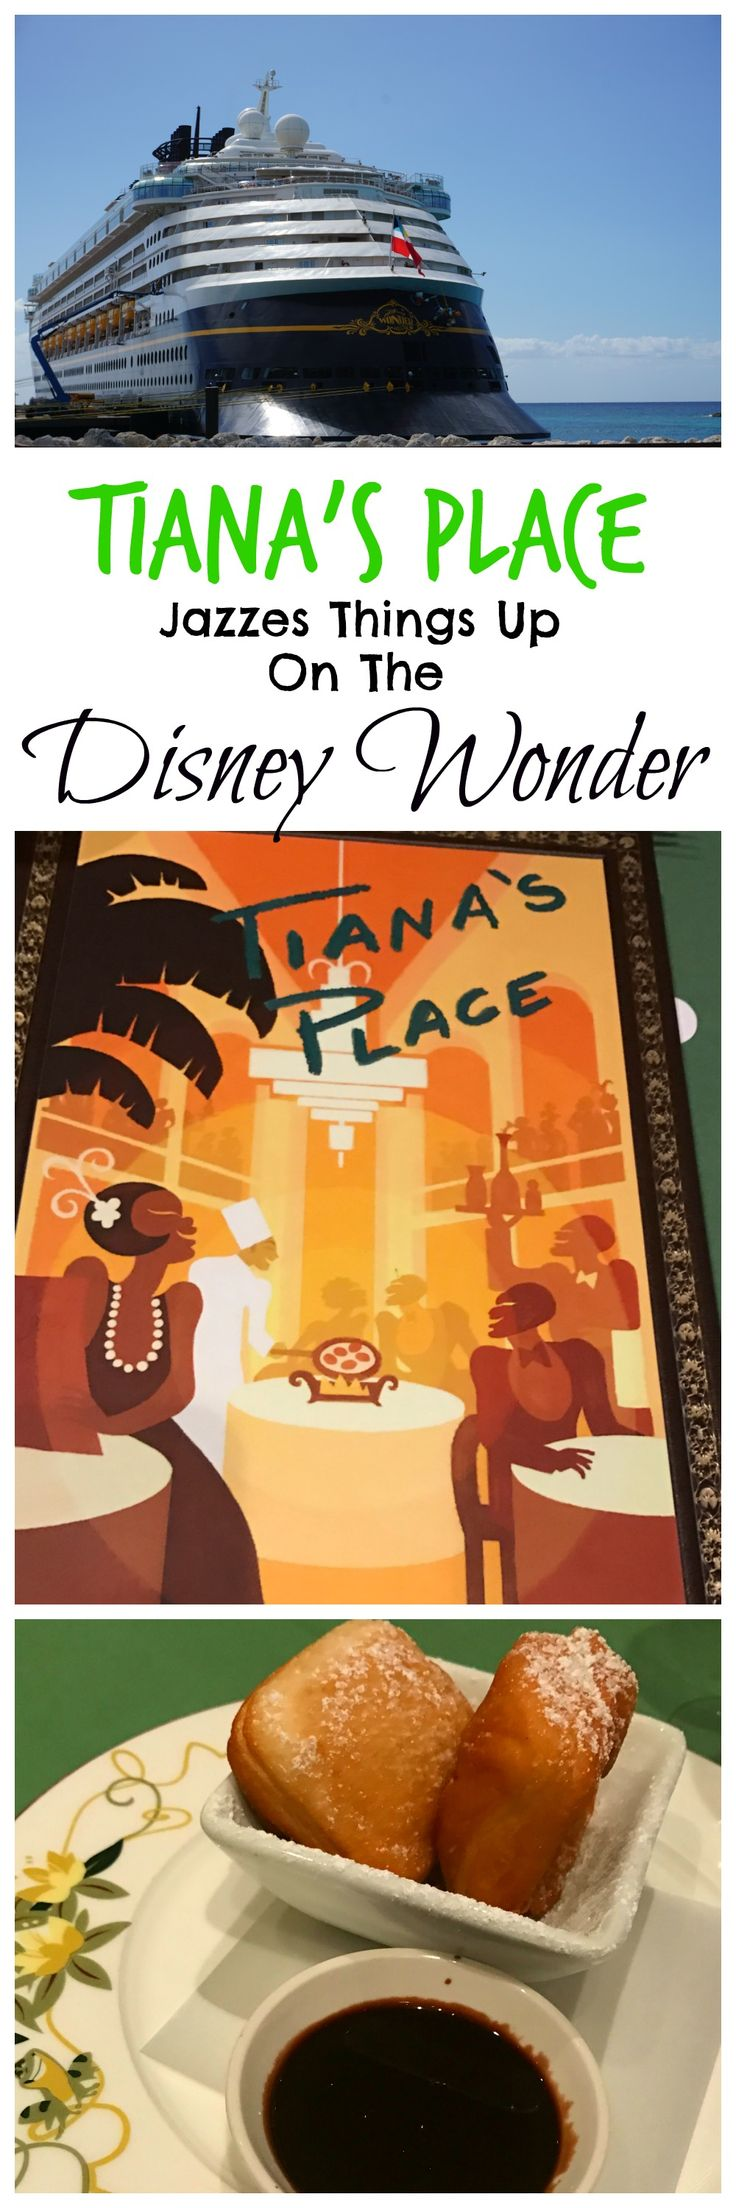 Tiana's Place Jazzes Things Up On The Disney Wonder